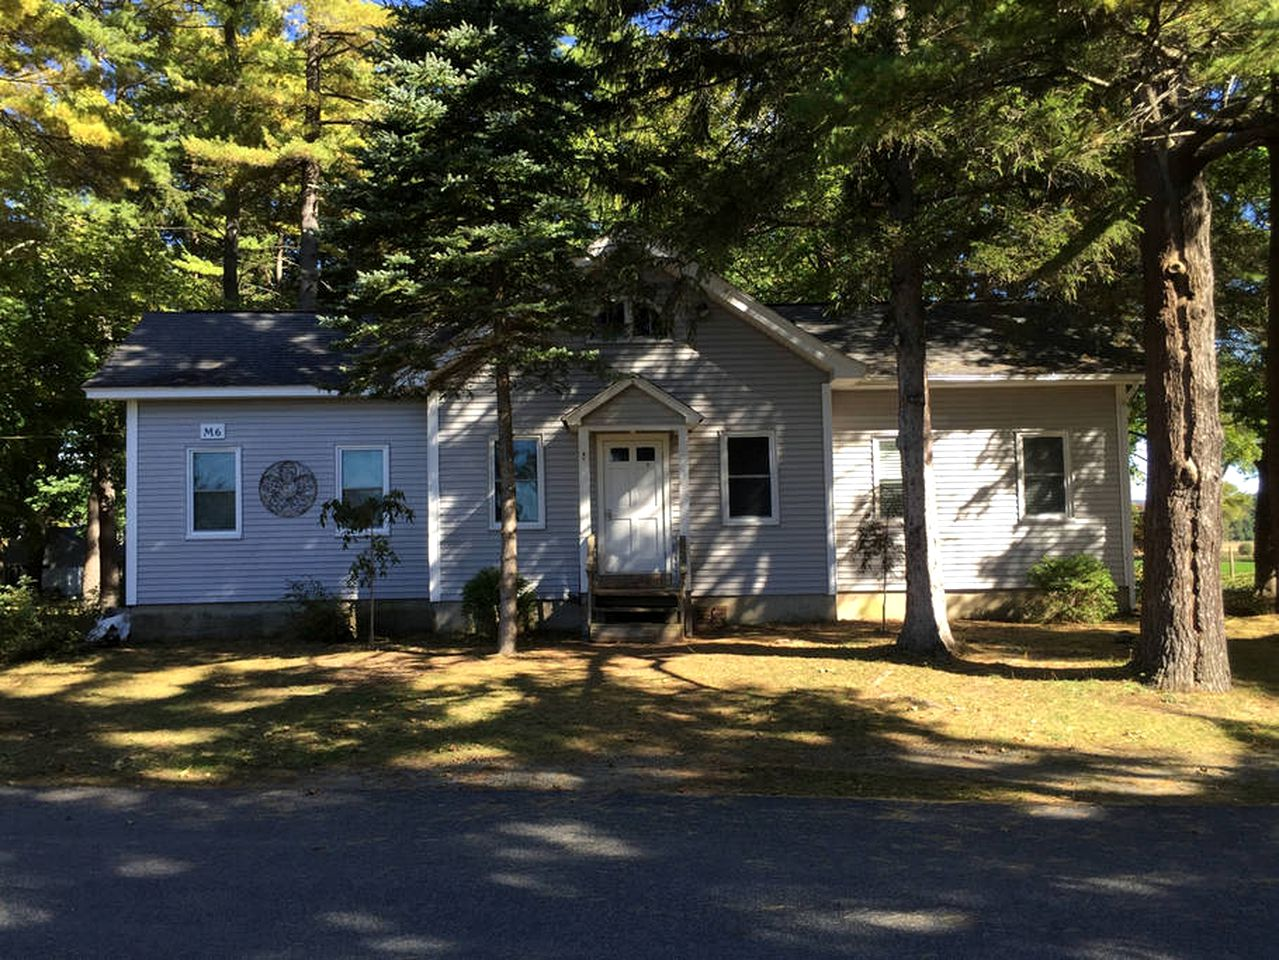 Cabins (Lenox, Massachusetts, United States)